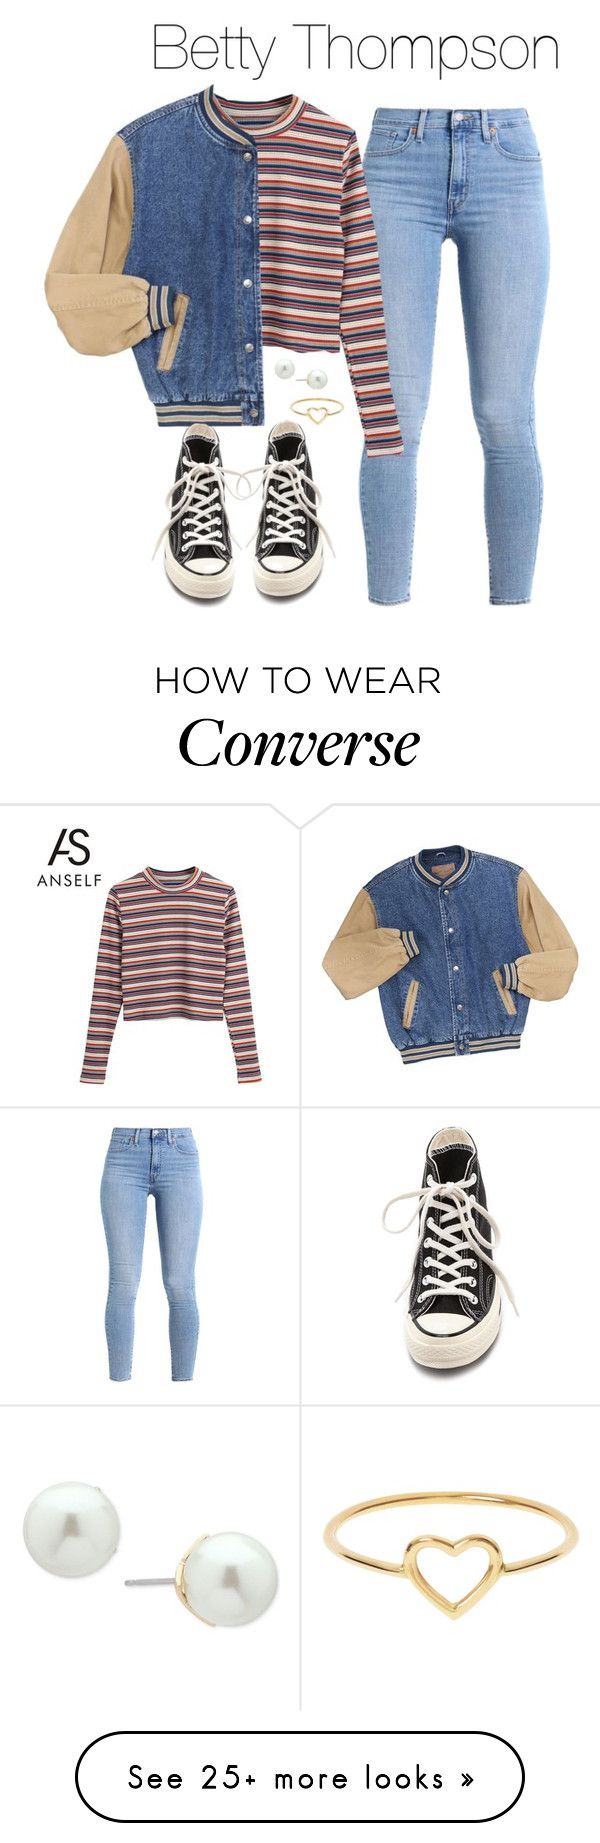 """Betty Thompson (Stranger Things)"" by demiwitch-of-mischief on Polyvore featuring Levi's, Converse, Love Is and Ivanka Trump"